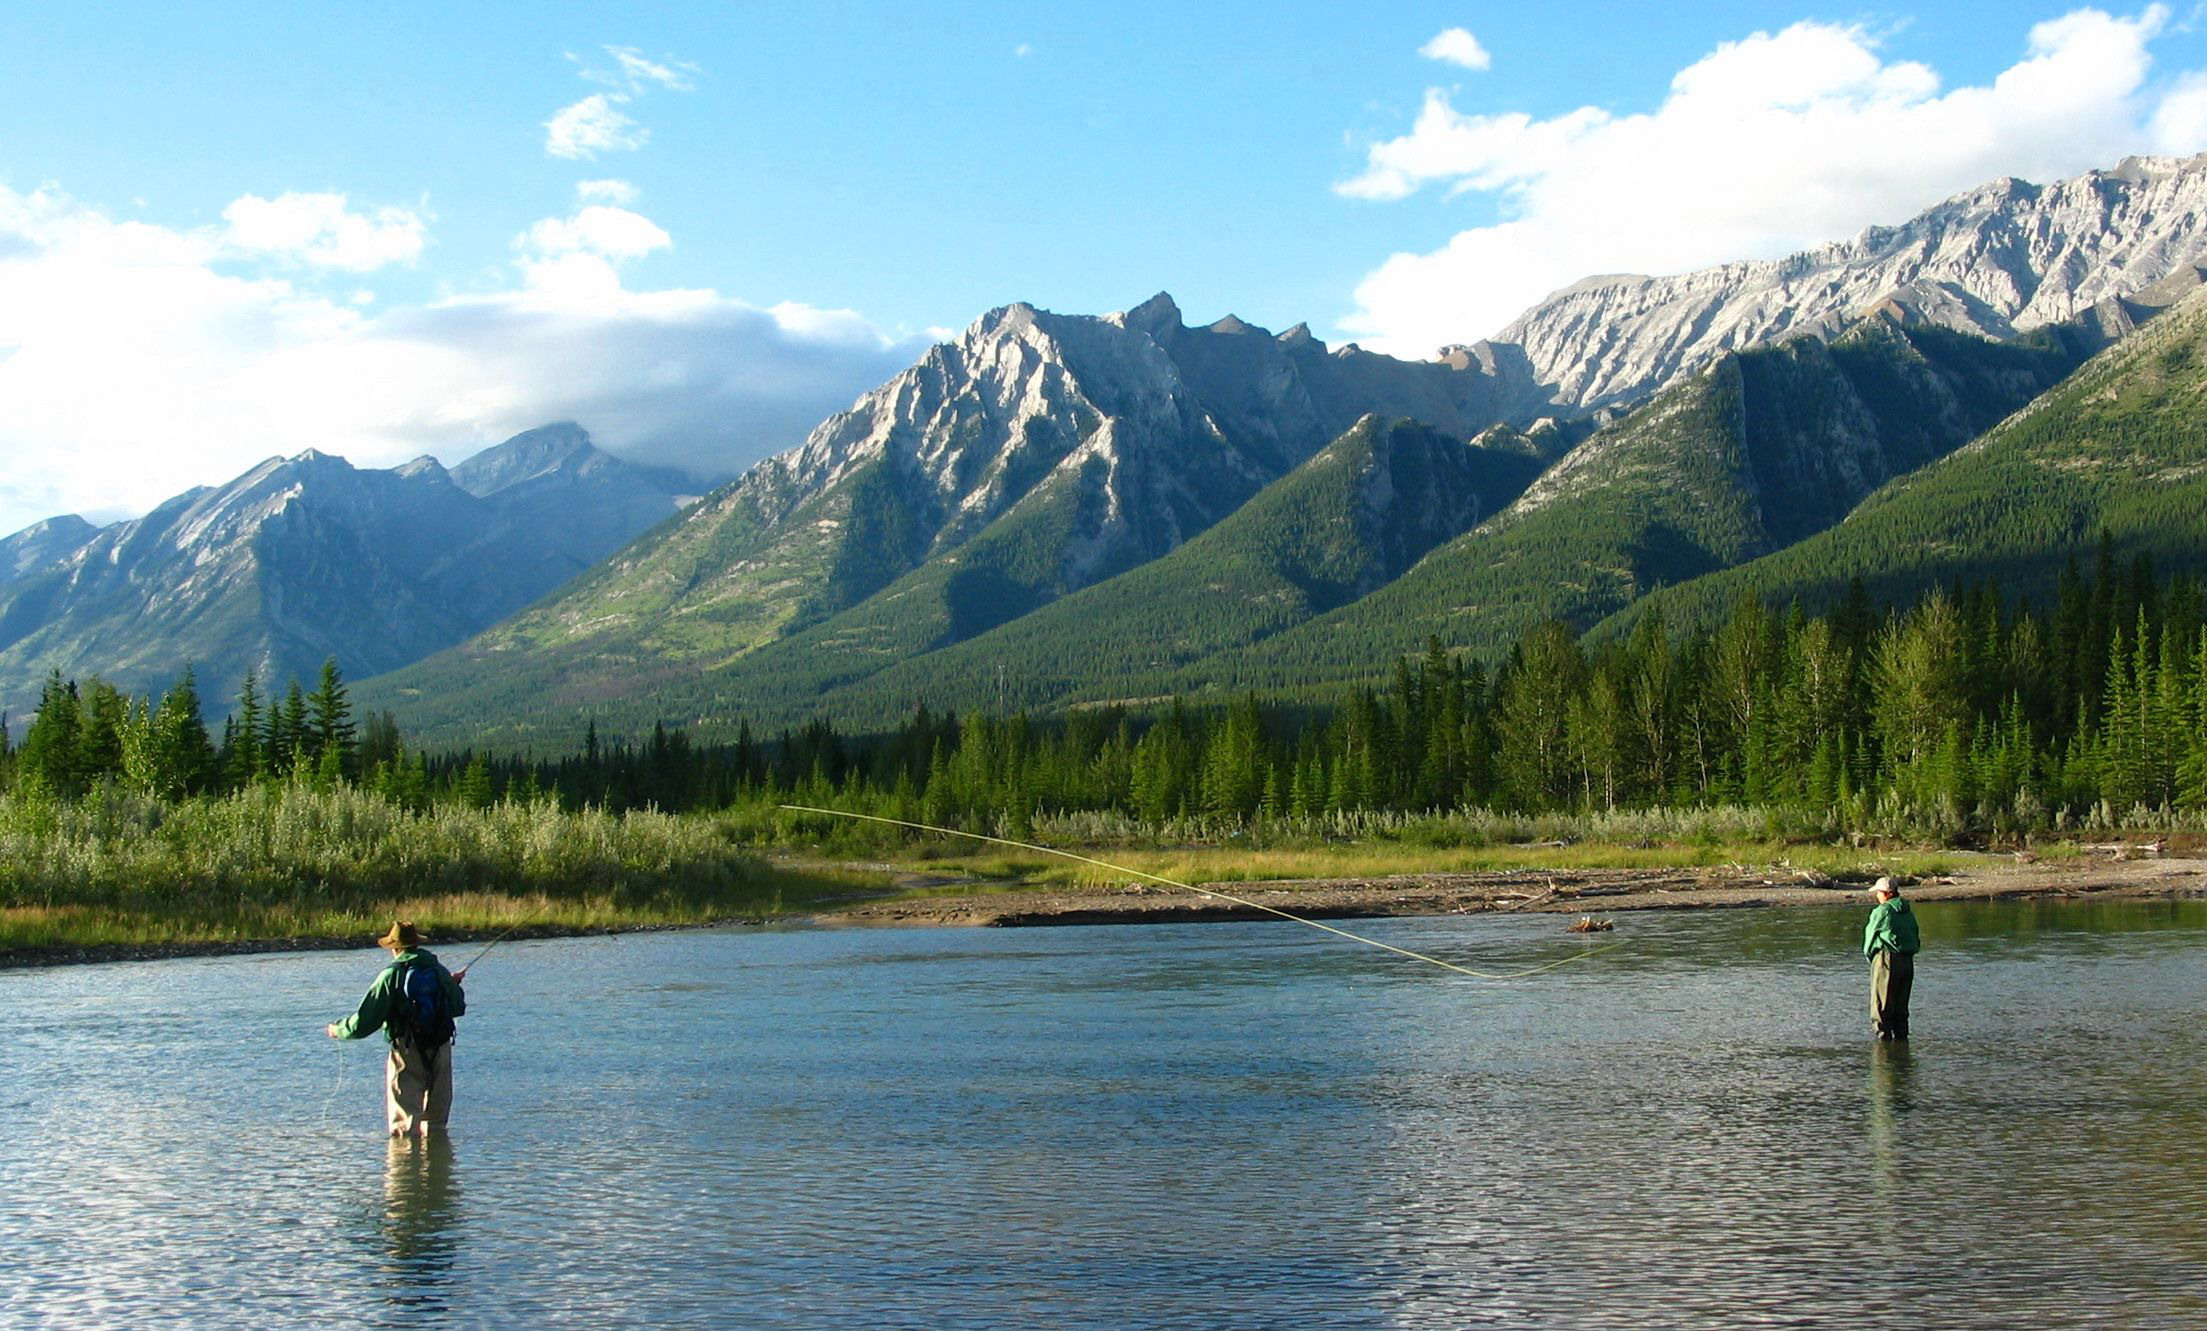 Fly Fishing Mountain Landscape - Viral Hook Marketing